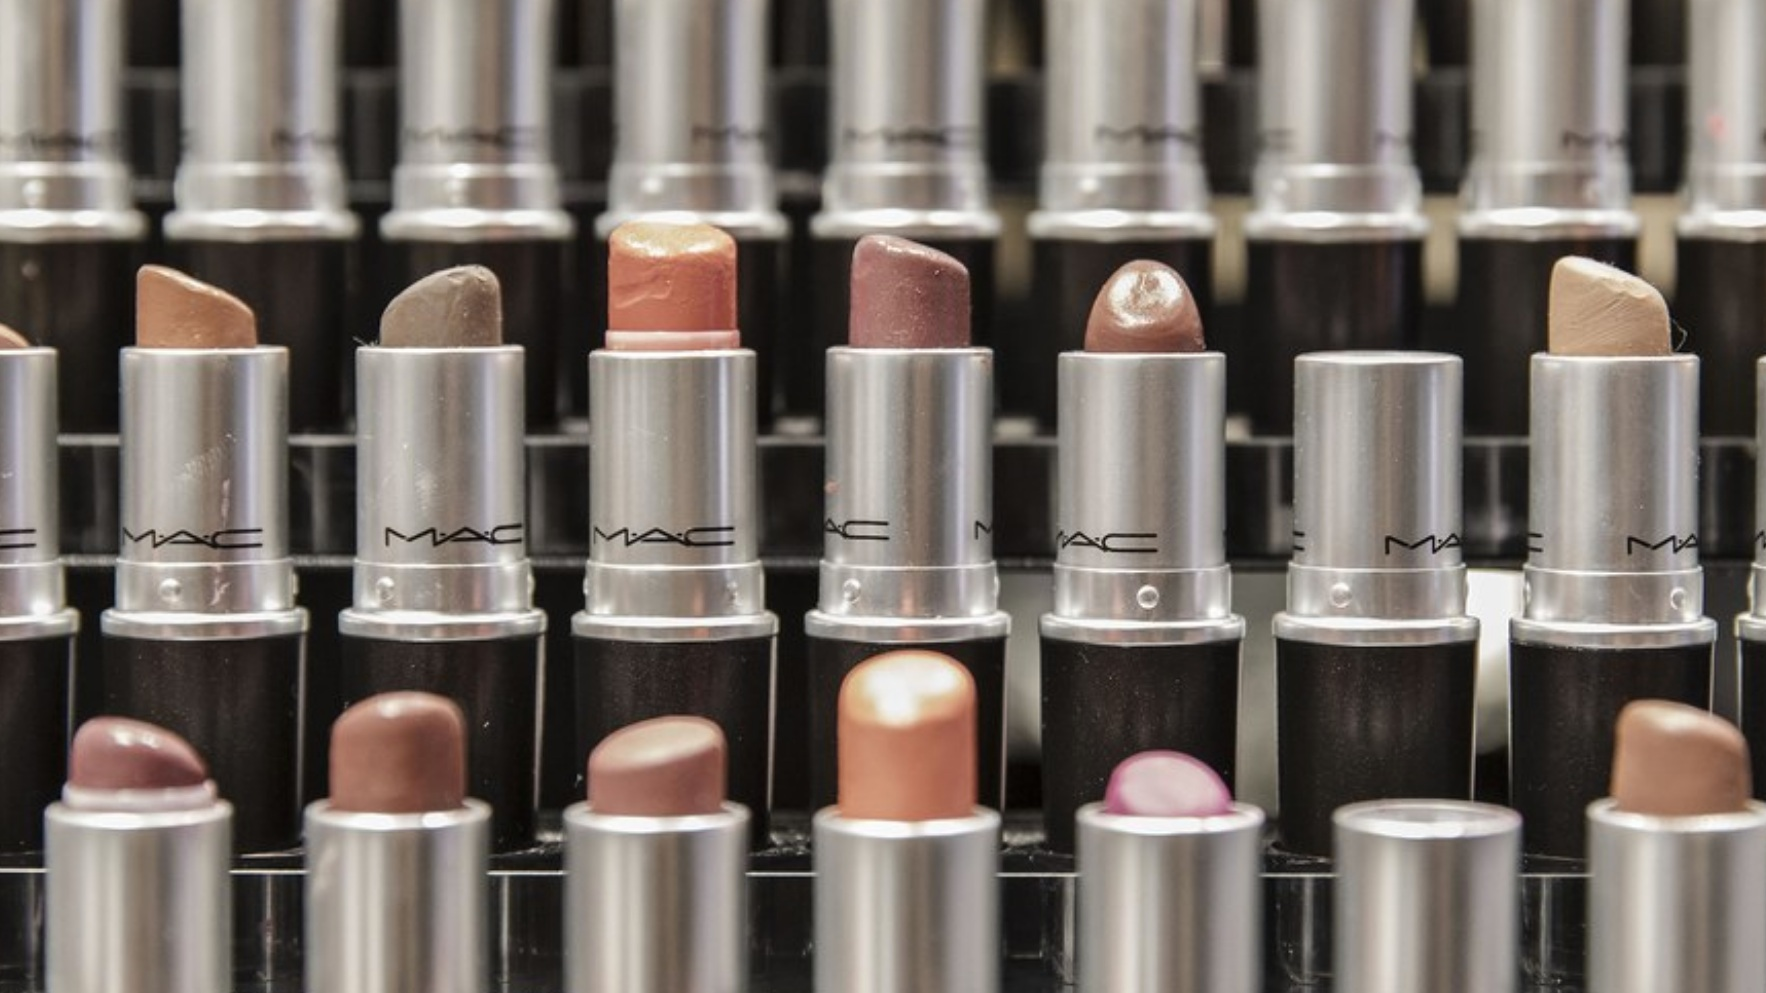 4. animal cruelty vs big beauty brands - So we all know animal testing is bad, but why do industry leading brands with the most power to shift practices continue to comply with it? How have they responded to anti-animal testing backlash?